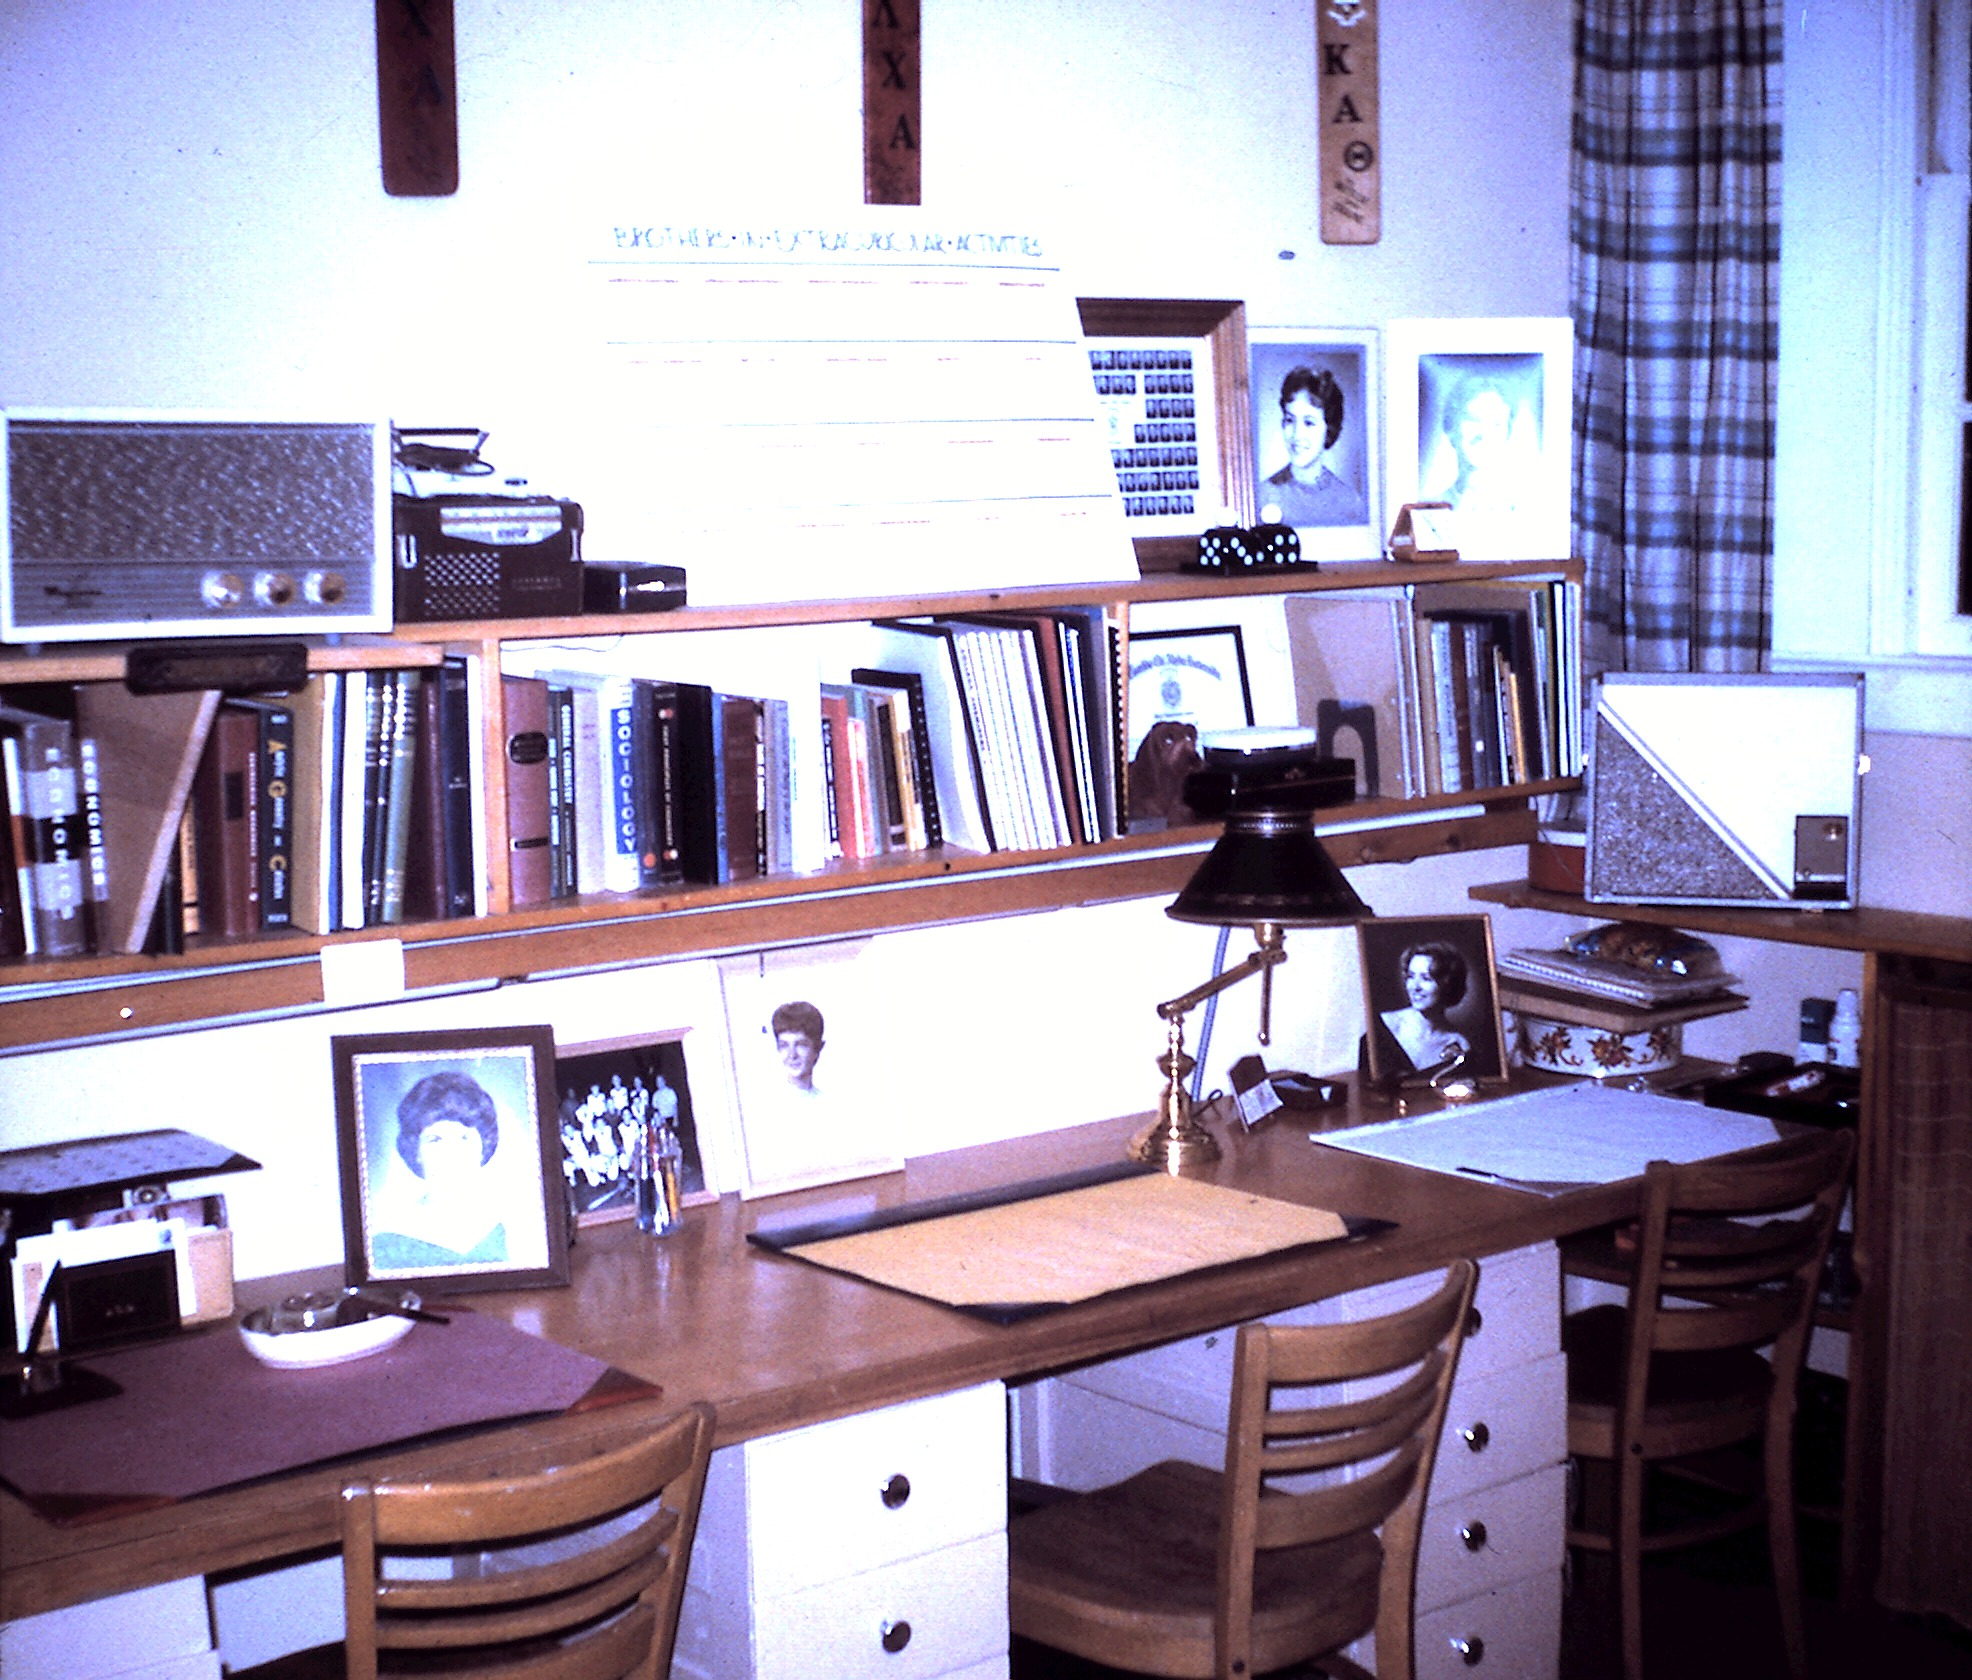 A room in the chapter house at 1601 Washenaw, 1963